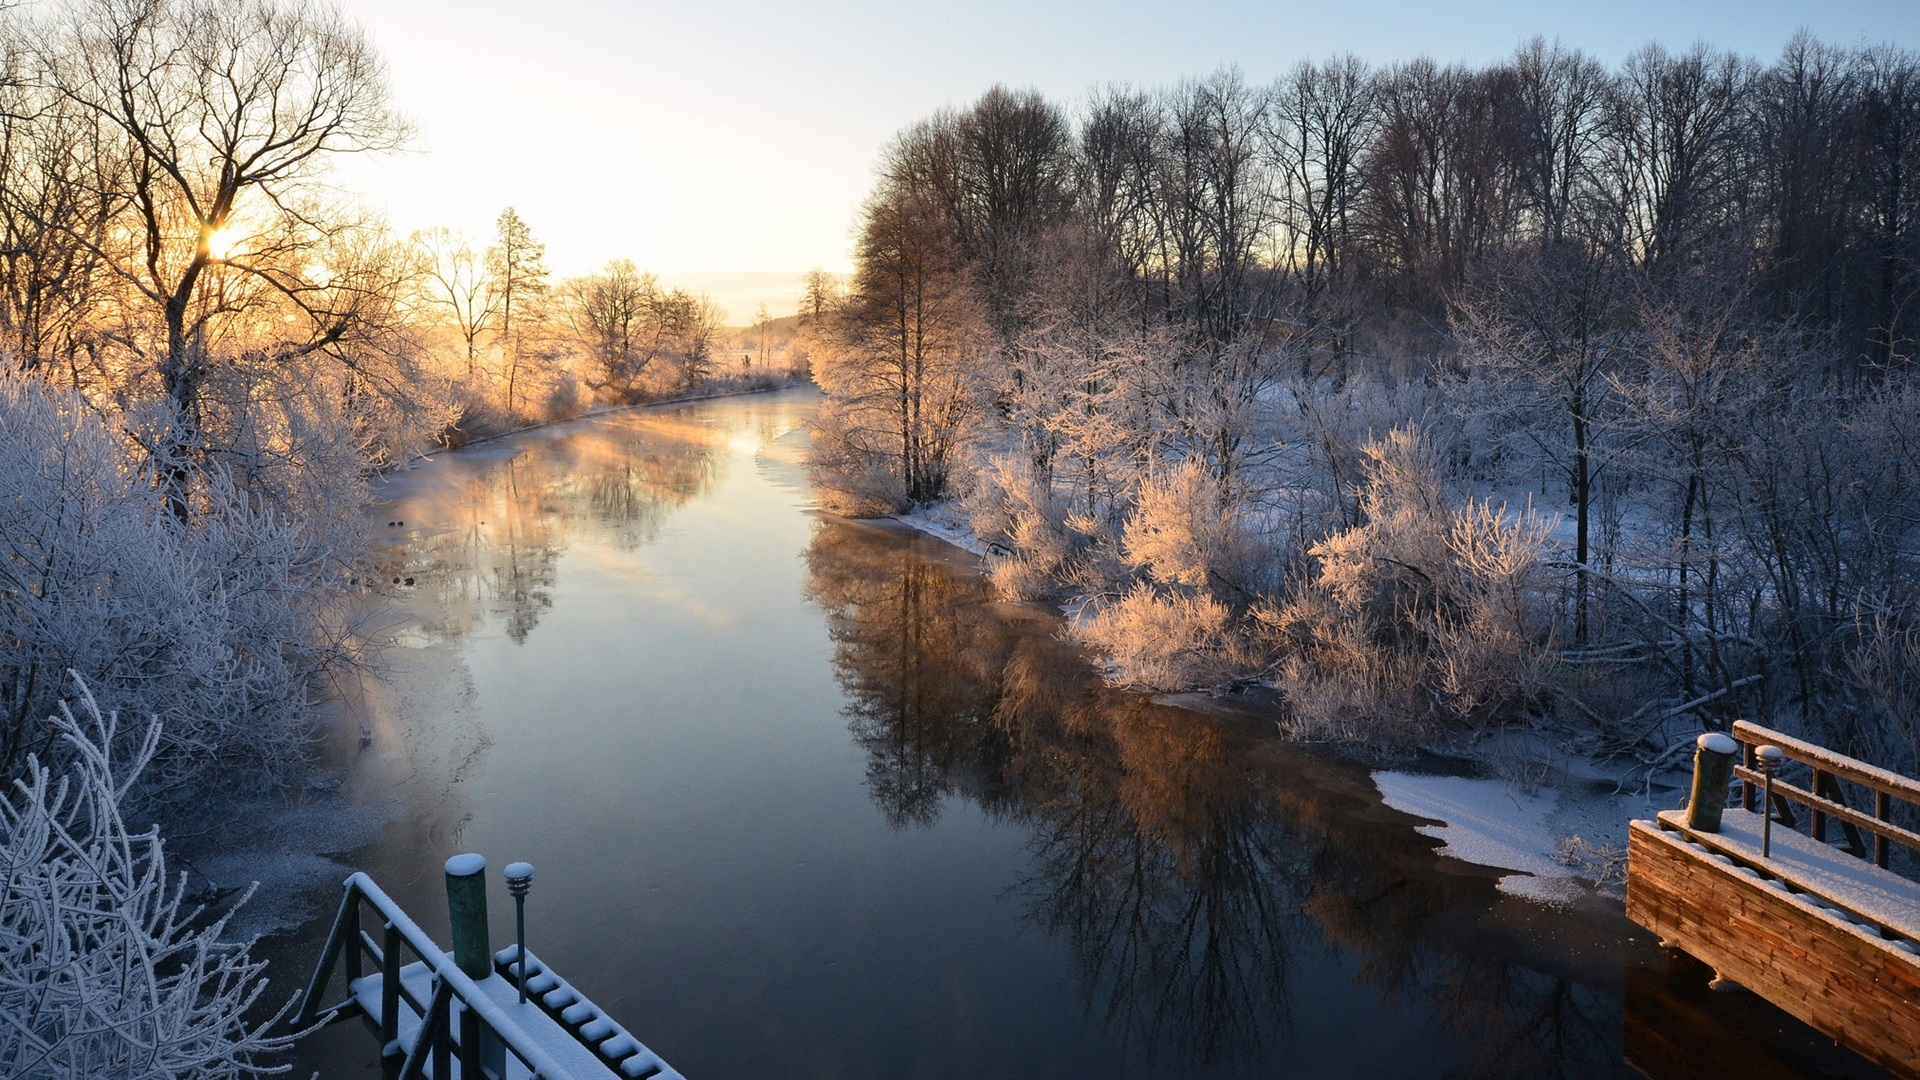 snow scenery full hd - photo #1